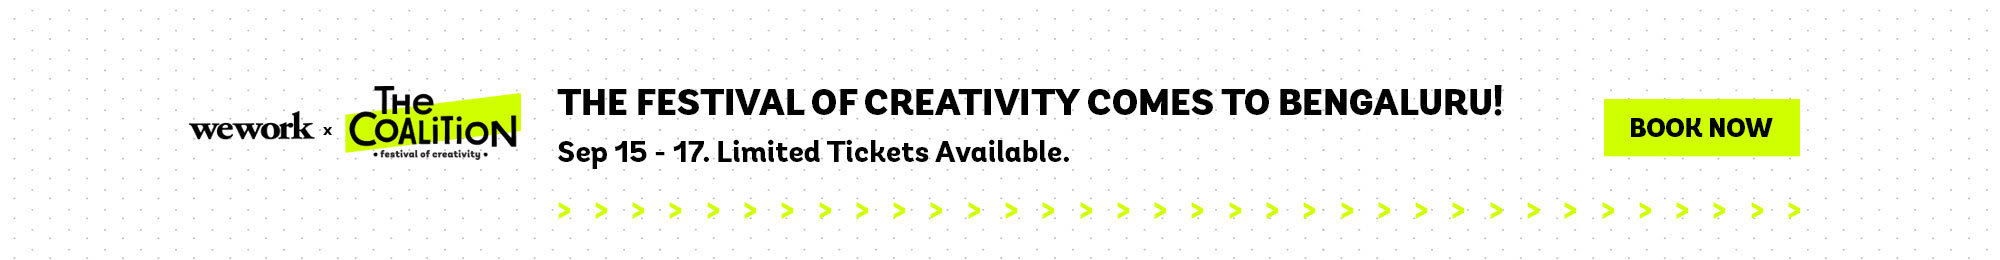 The Festival of Creativity comes to Bengaluru. Sep 15 - 17.